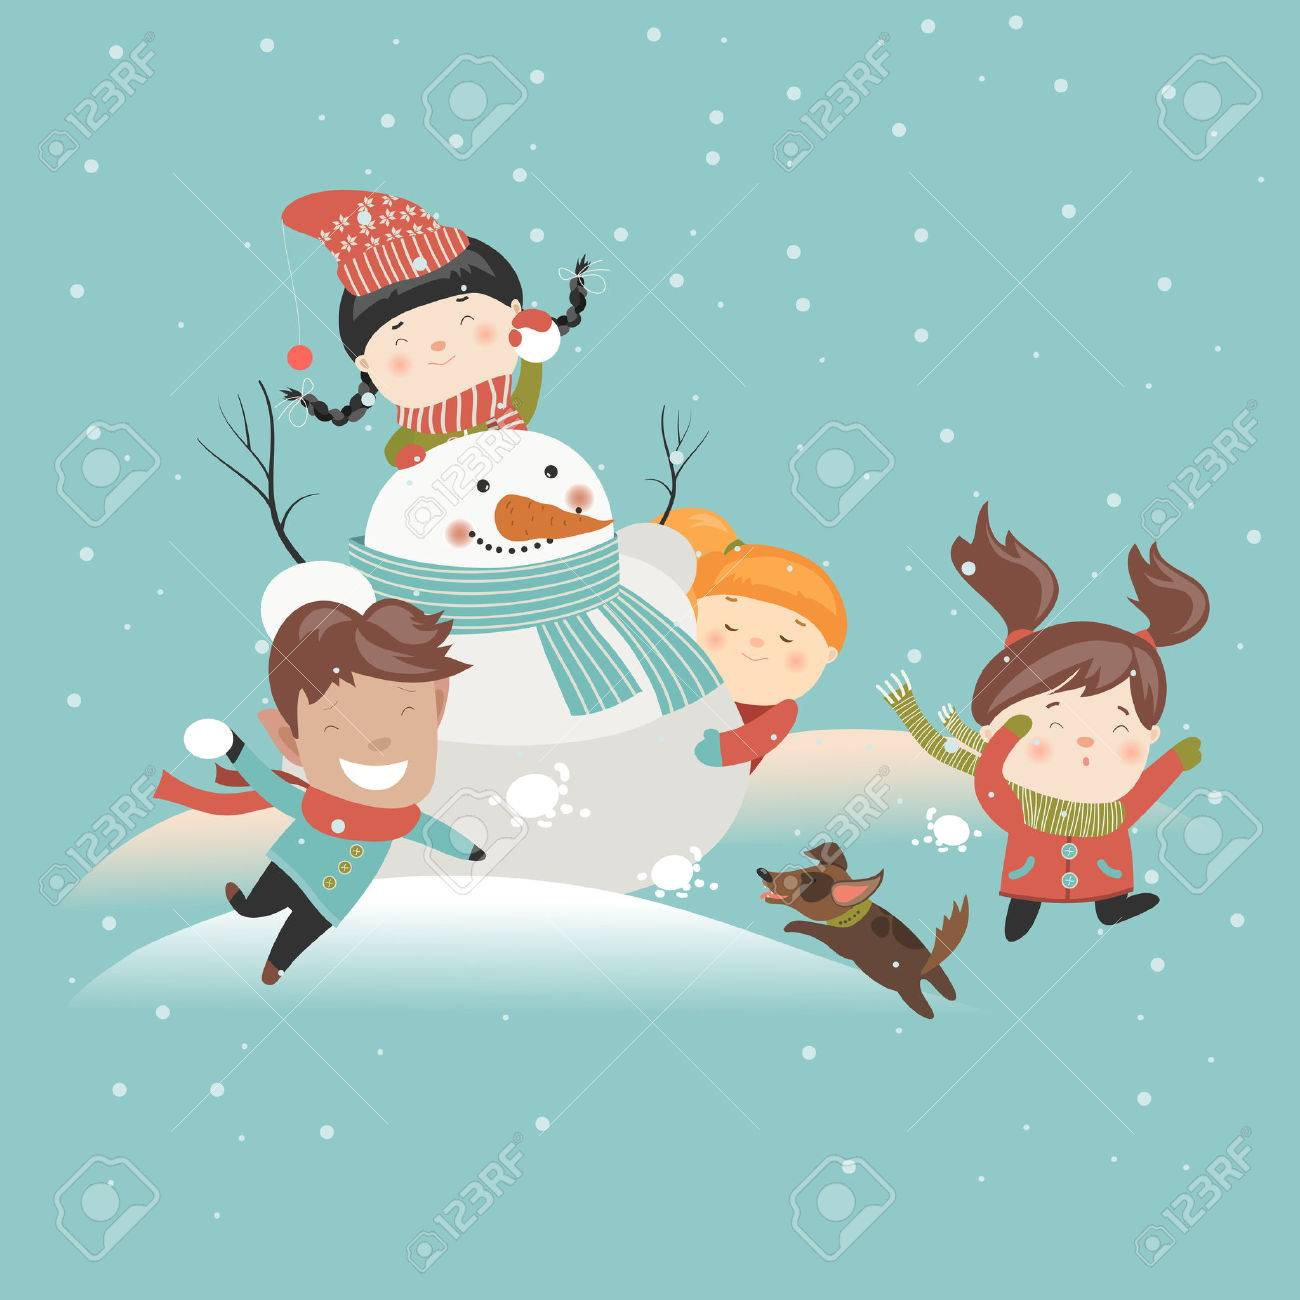 Funny kids playing snowball fight. Vector illustration - 45569189